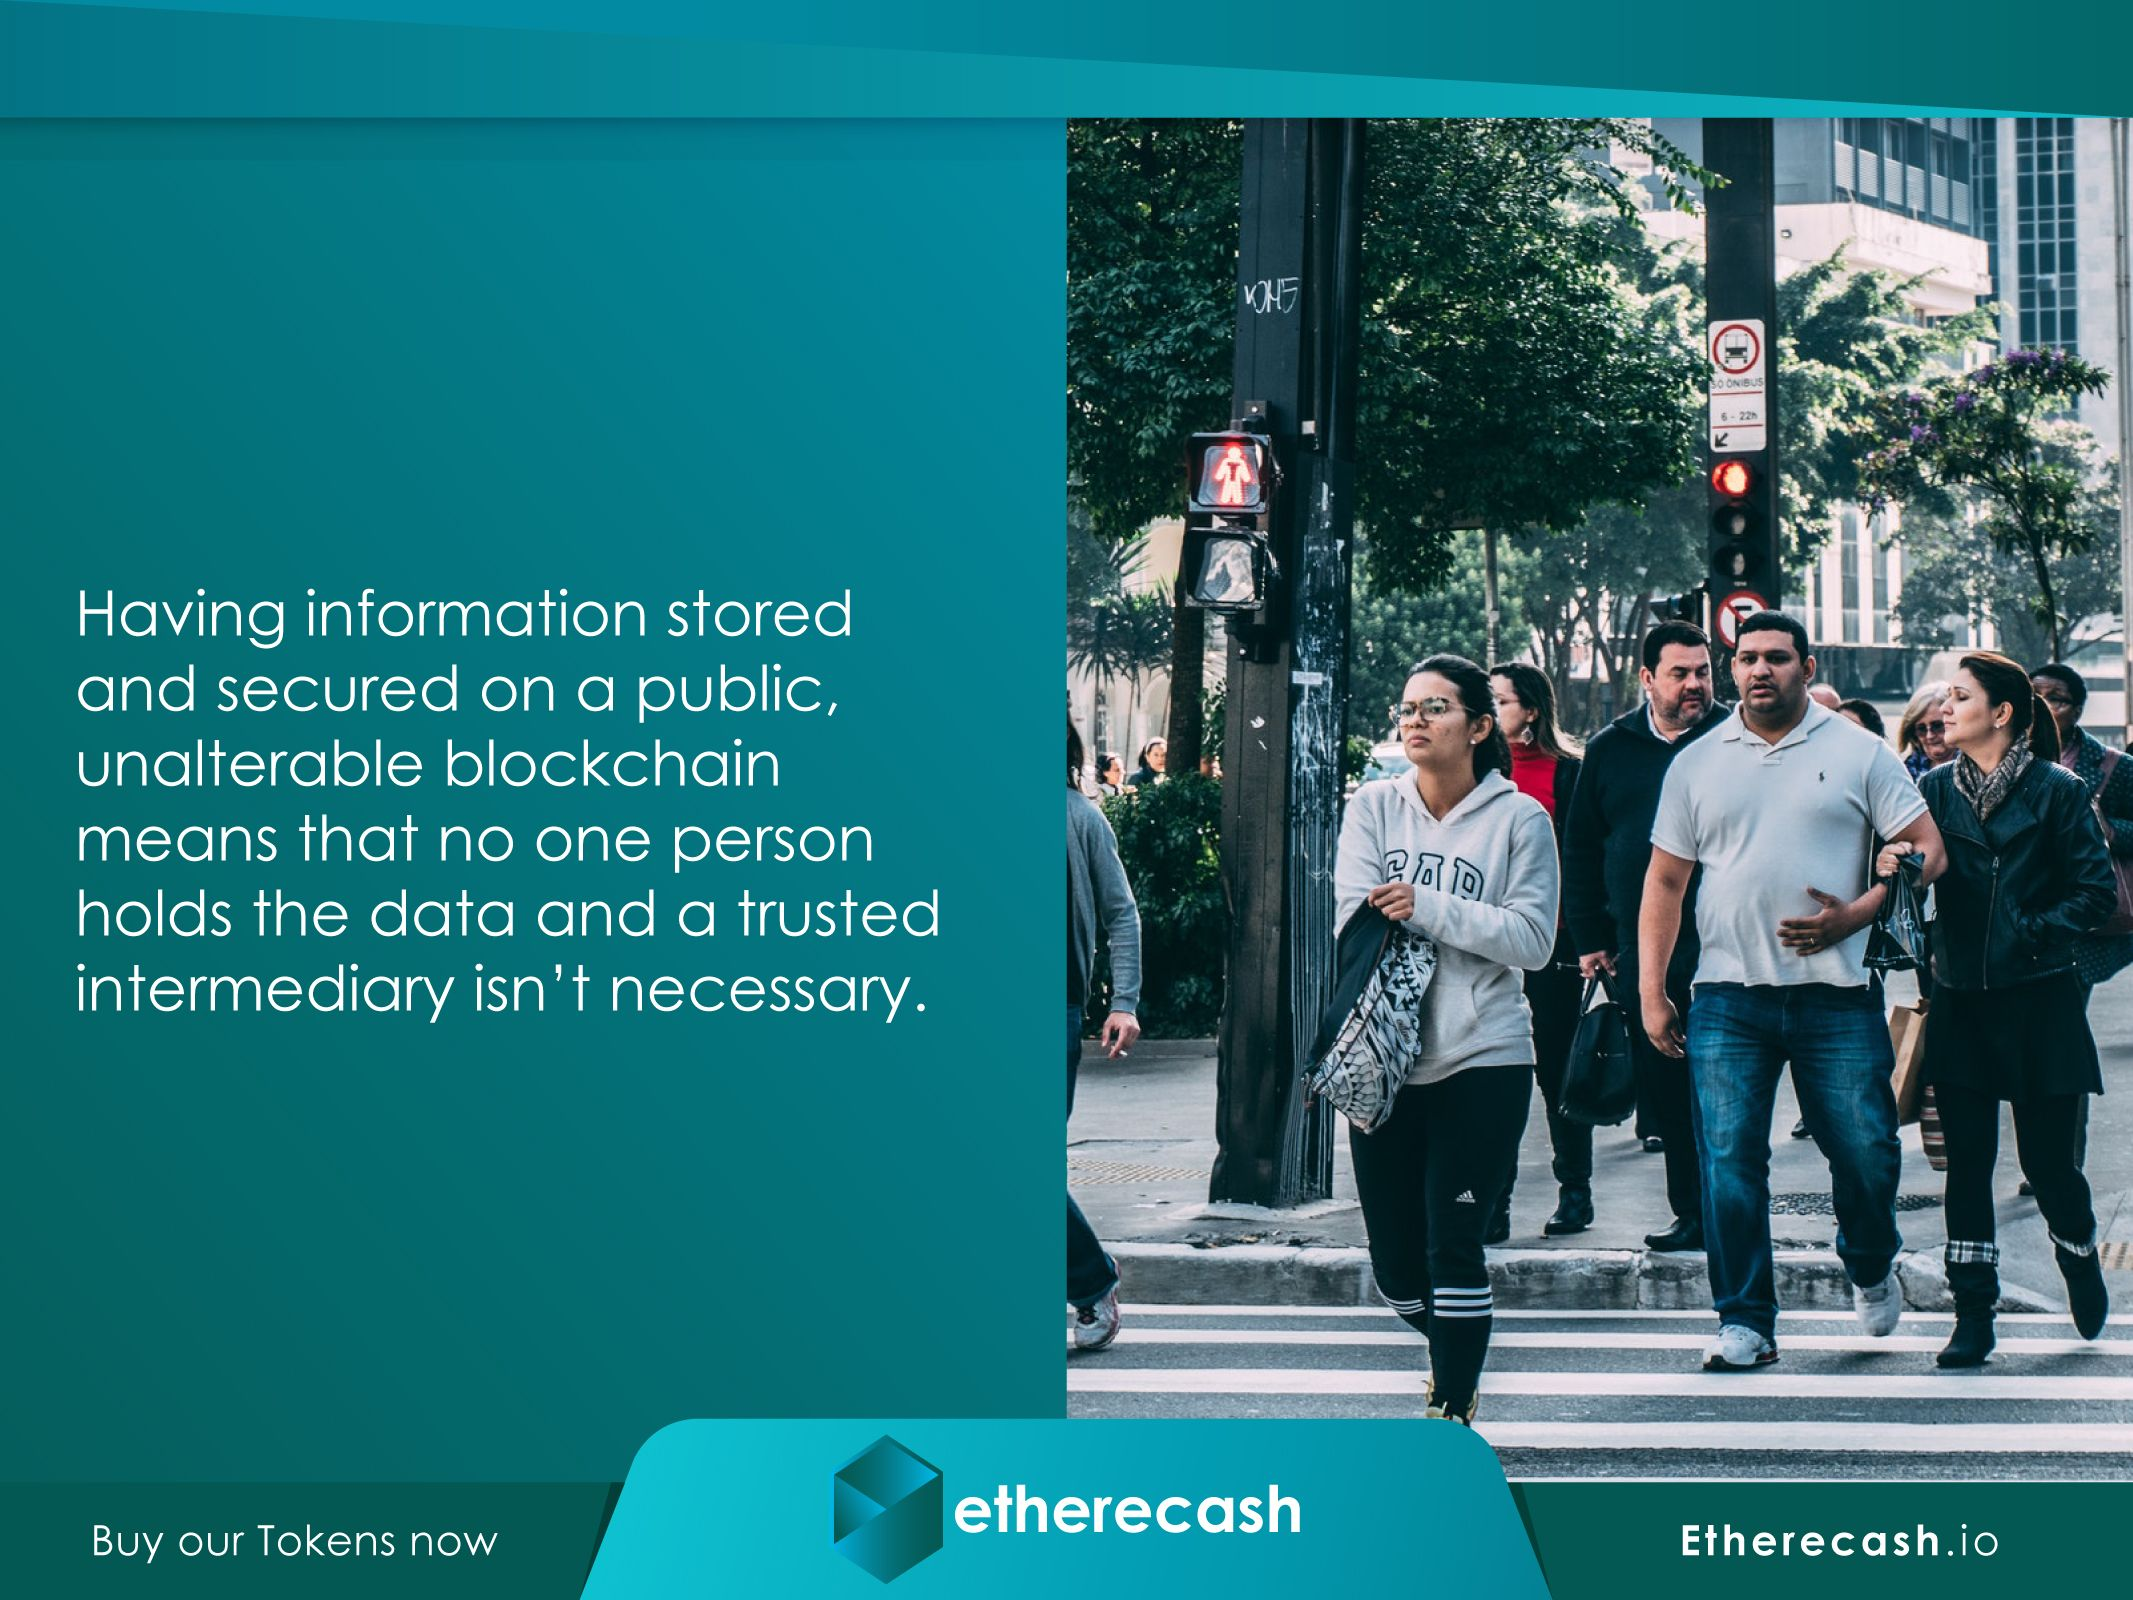 Etherecash.io. Blockchain technology is not only the core